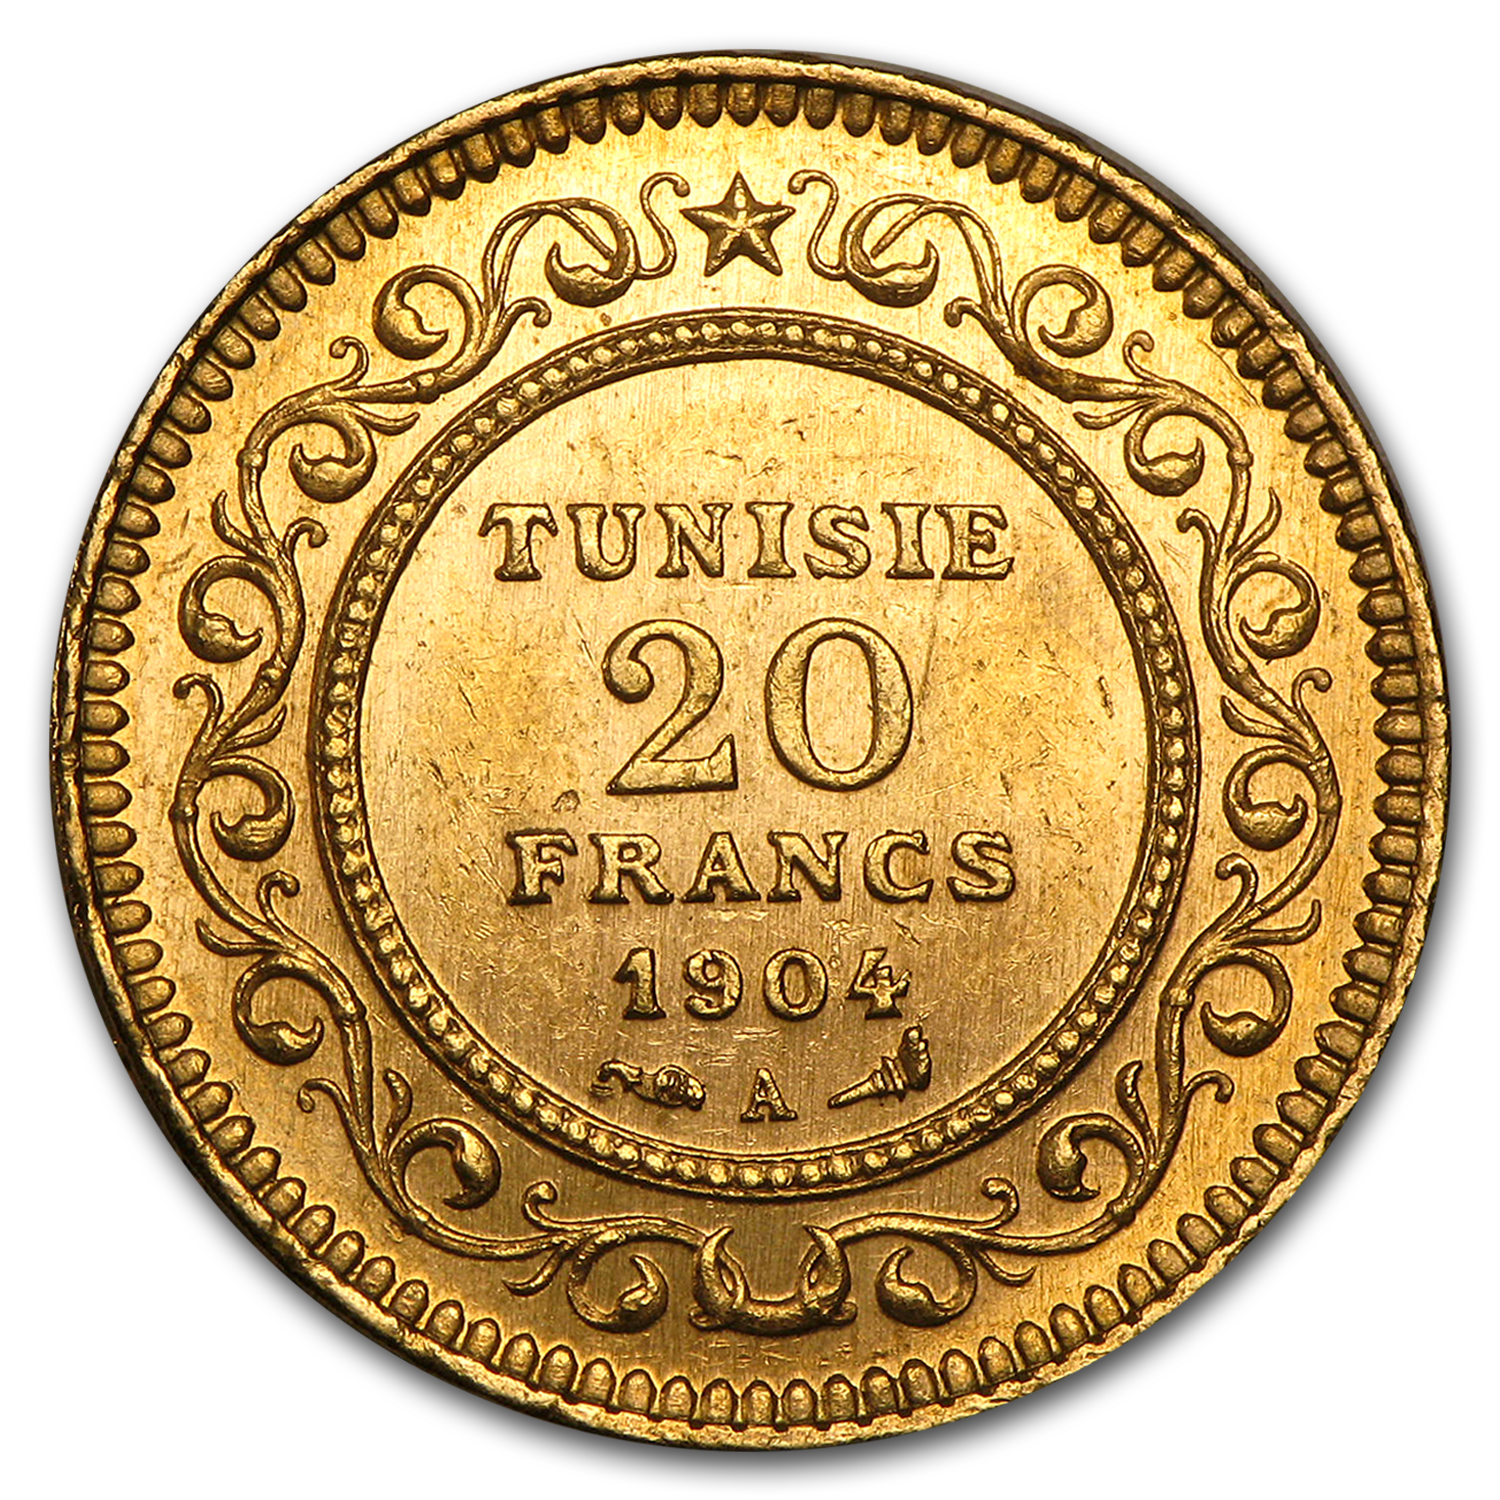 1891-1904 Tunisia Gold 20 Francs Paris Mint Average Circulated